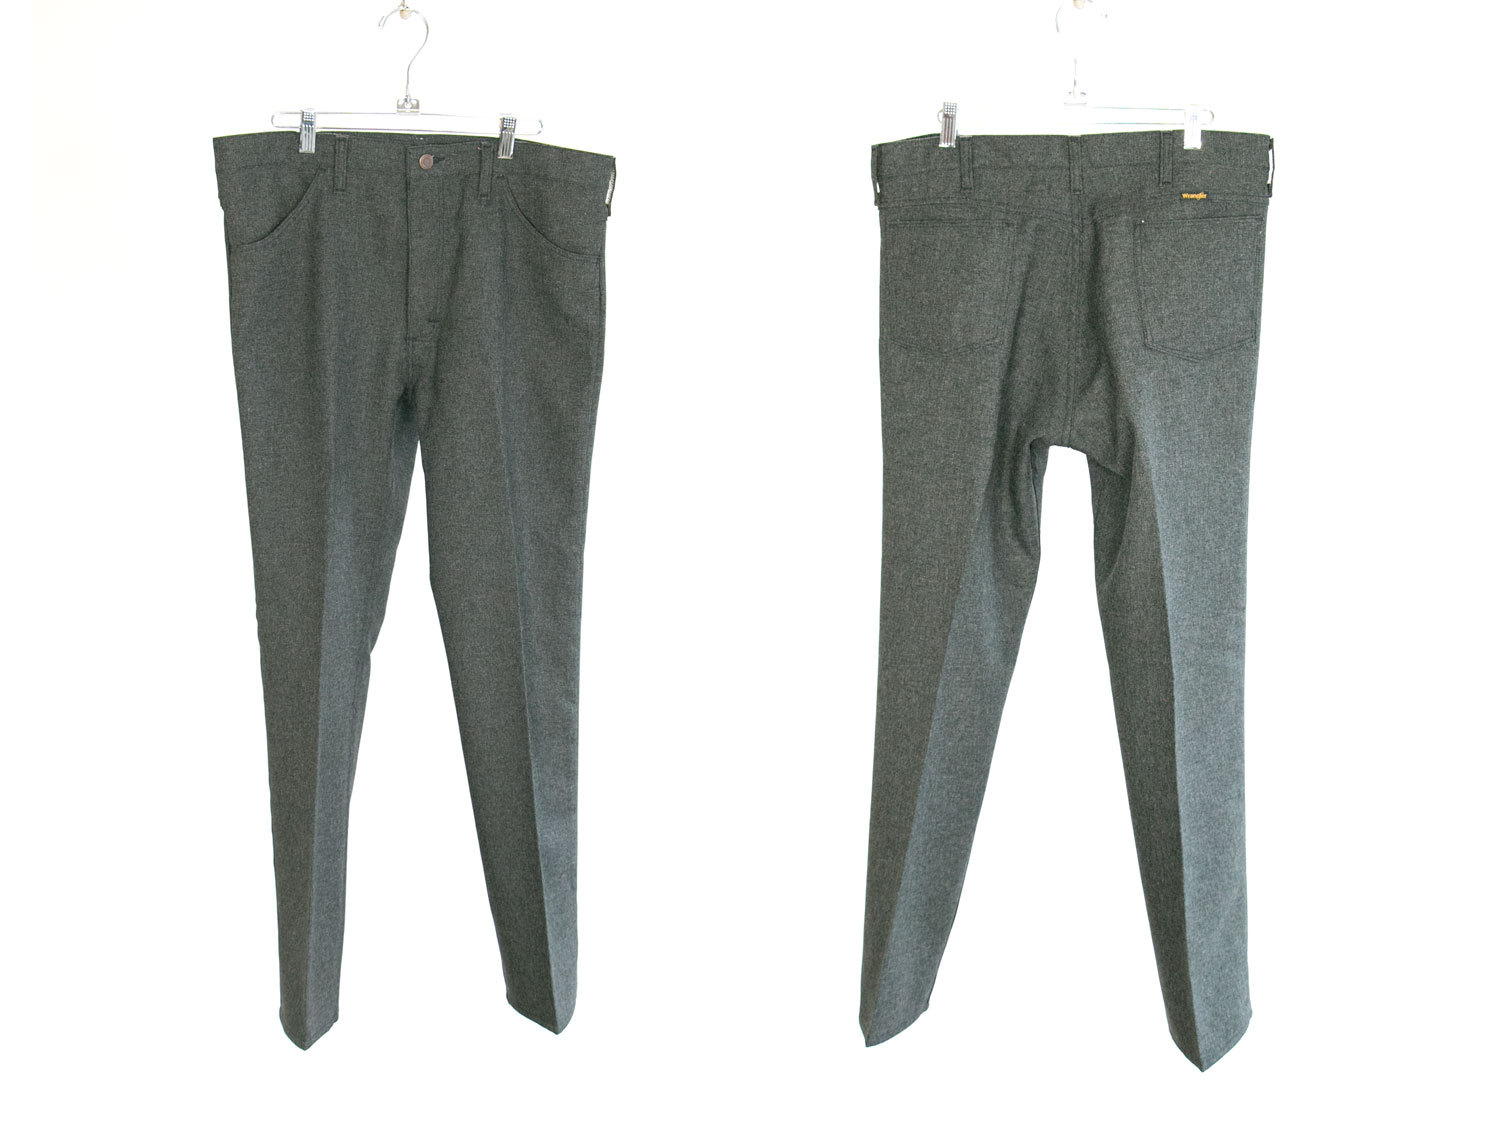 Vintage Wrangle Wrancher Sta-Prest, Perma Prest, W36 L30 // Speckled Gray // Hipster // Country Western